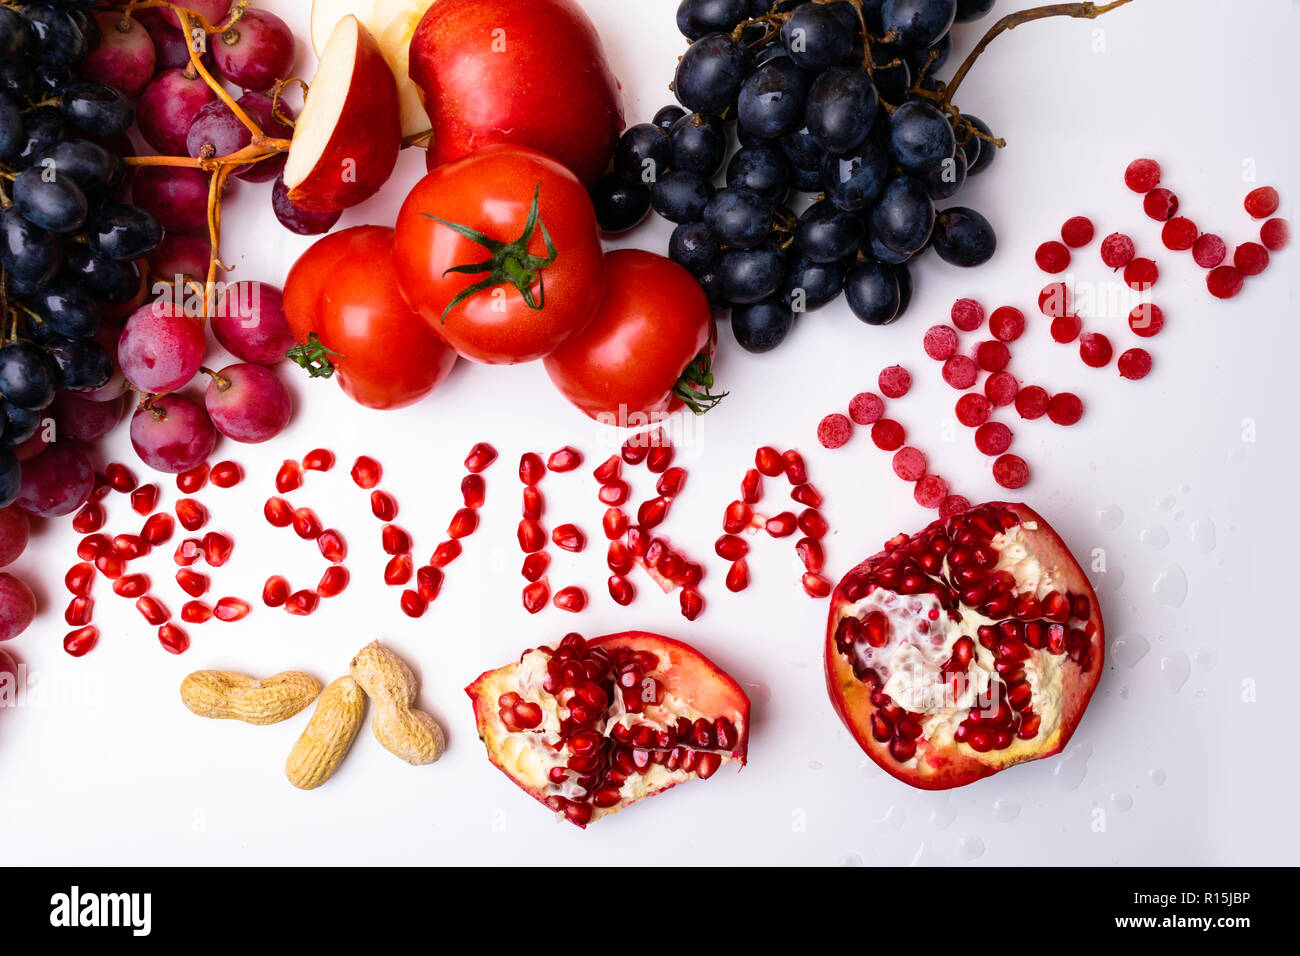 Rich With Resveratrol Food Raw Food Ingredients Nutrition Background Isolated On White Mix Of Fresh Fruits And Berries Stock Photo Alamy